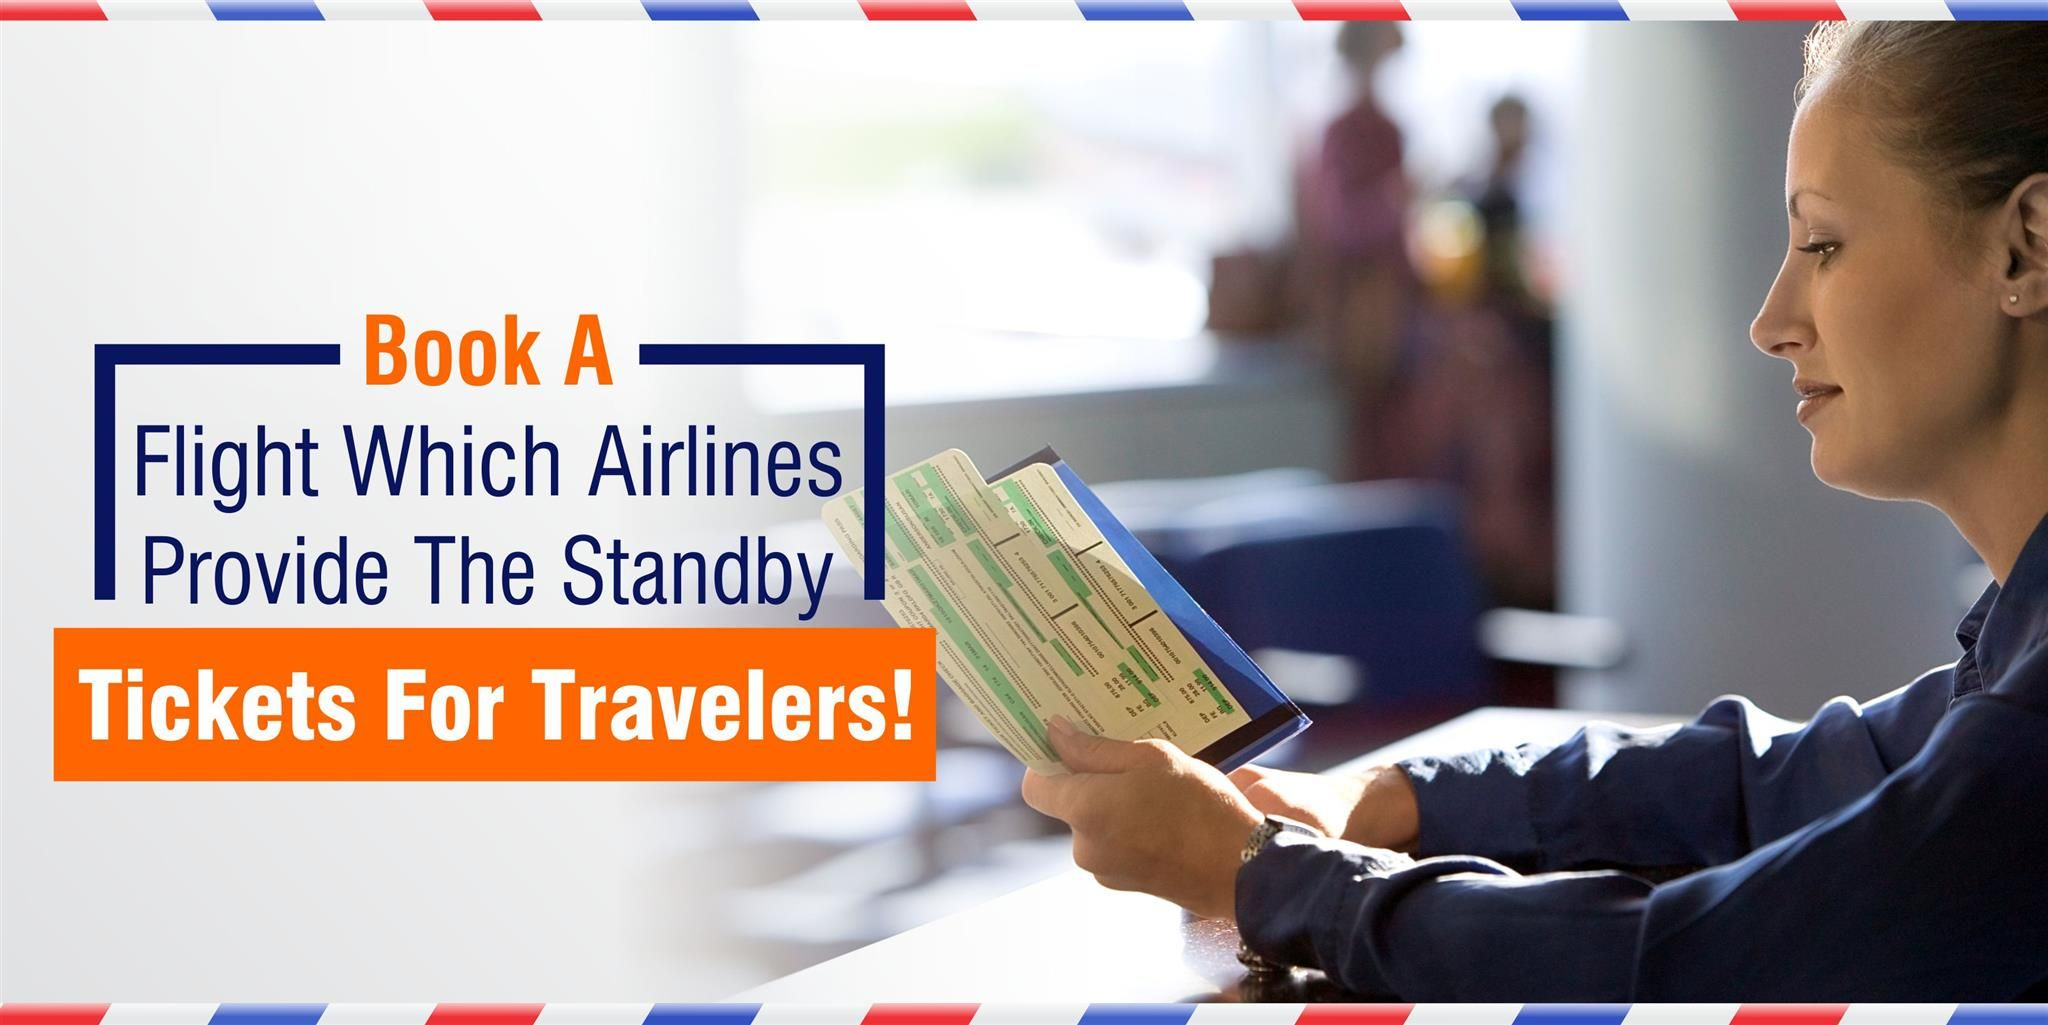 Learn about the standby policies of the #airline you are